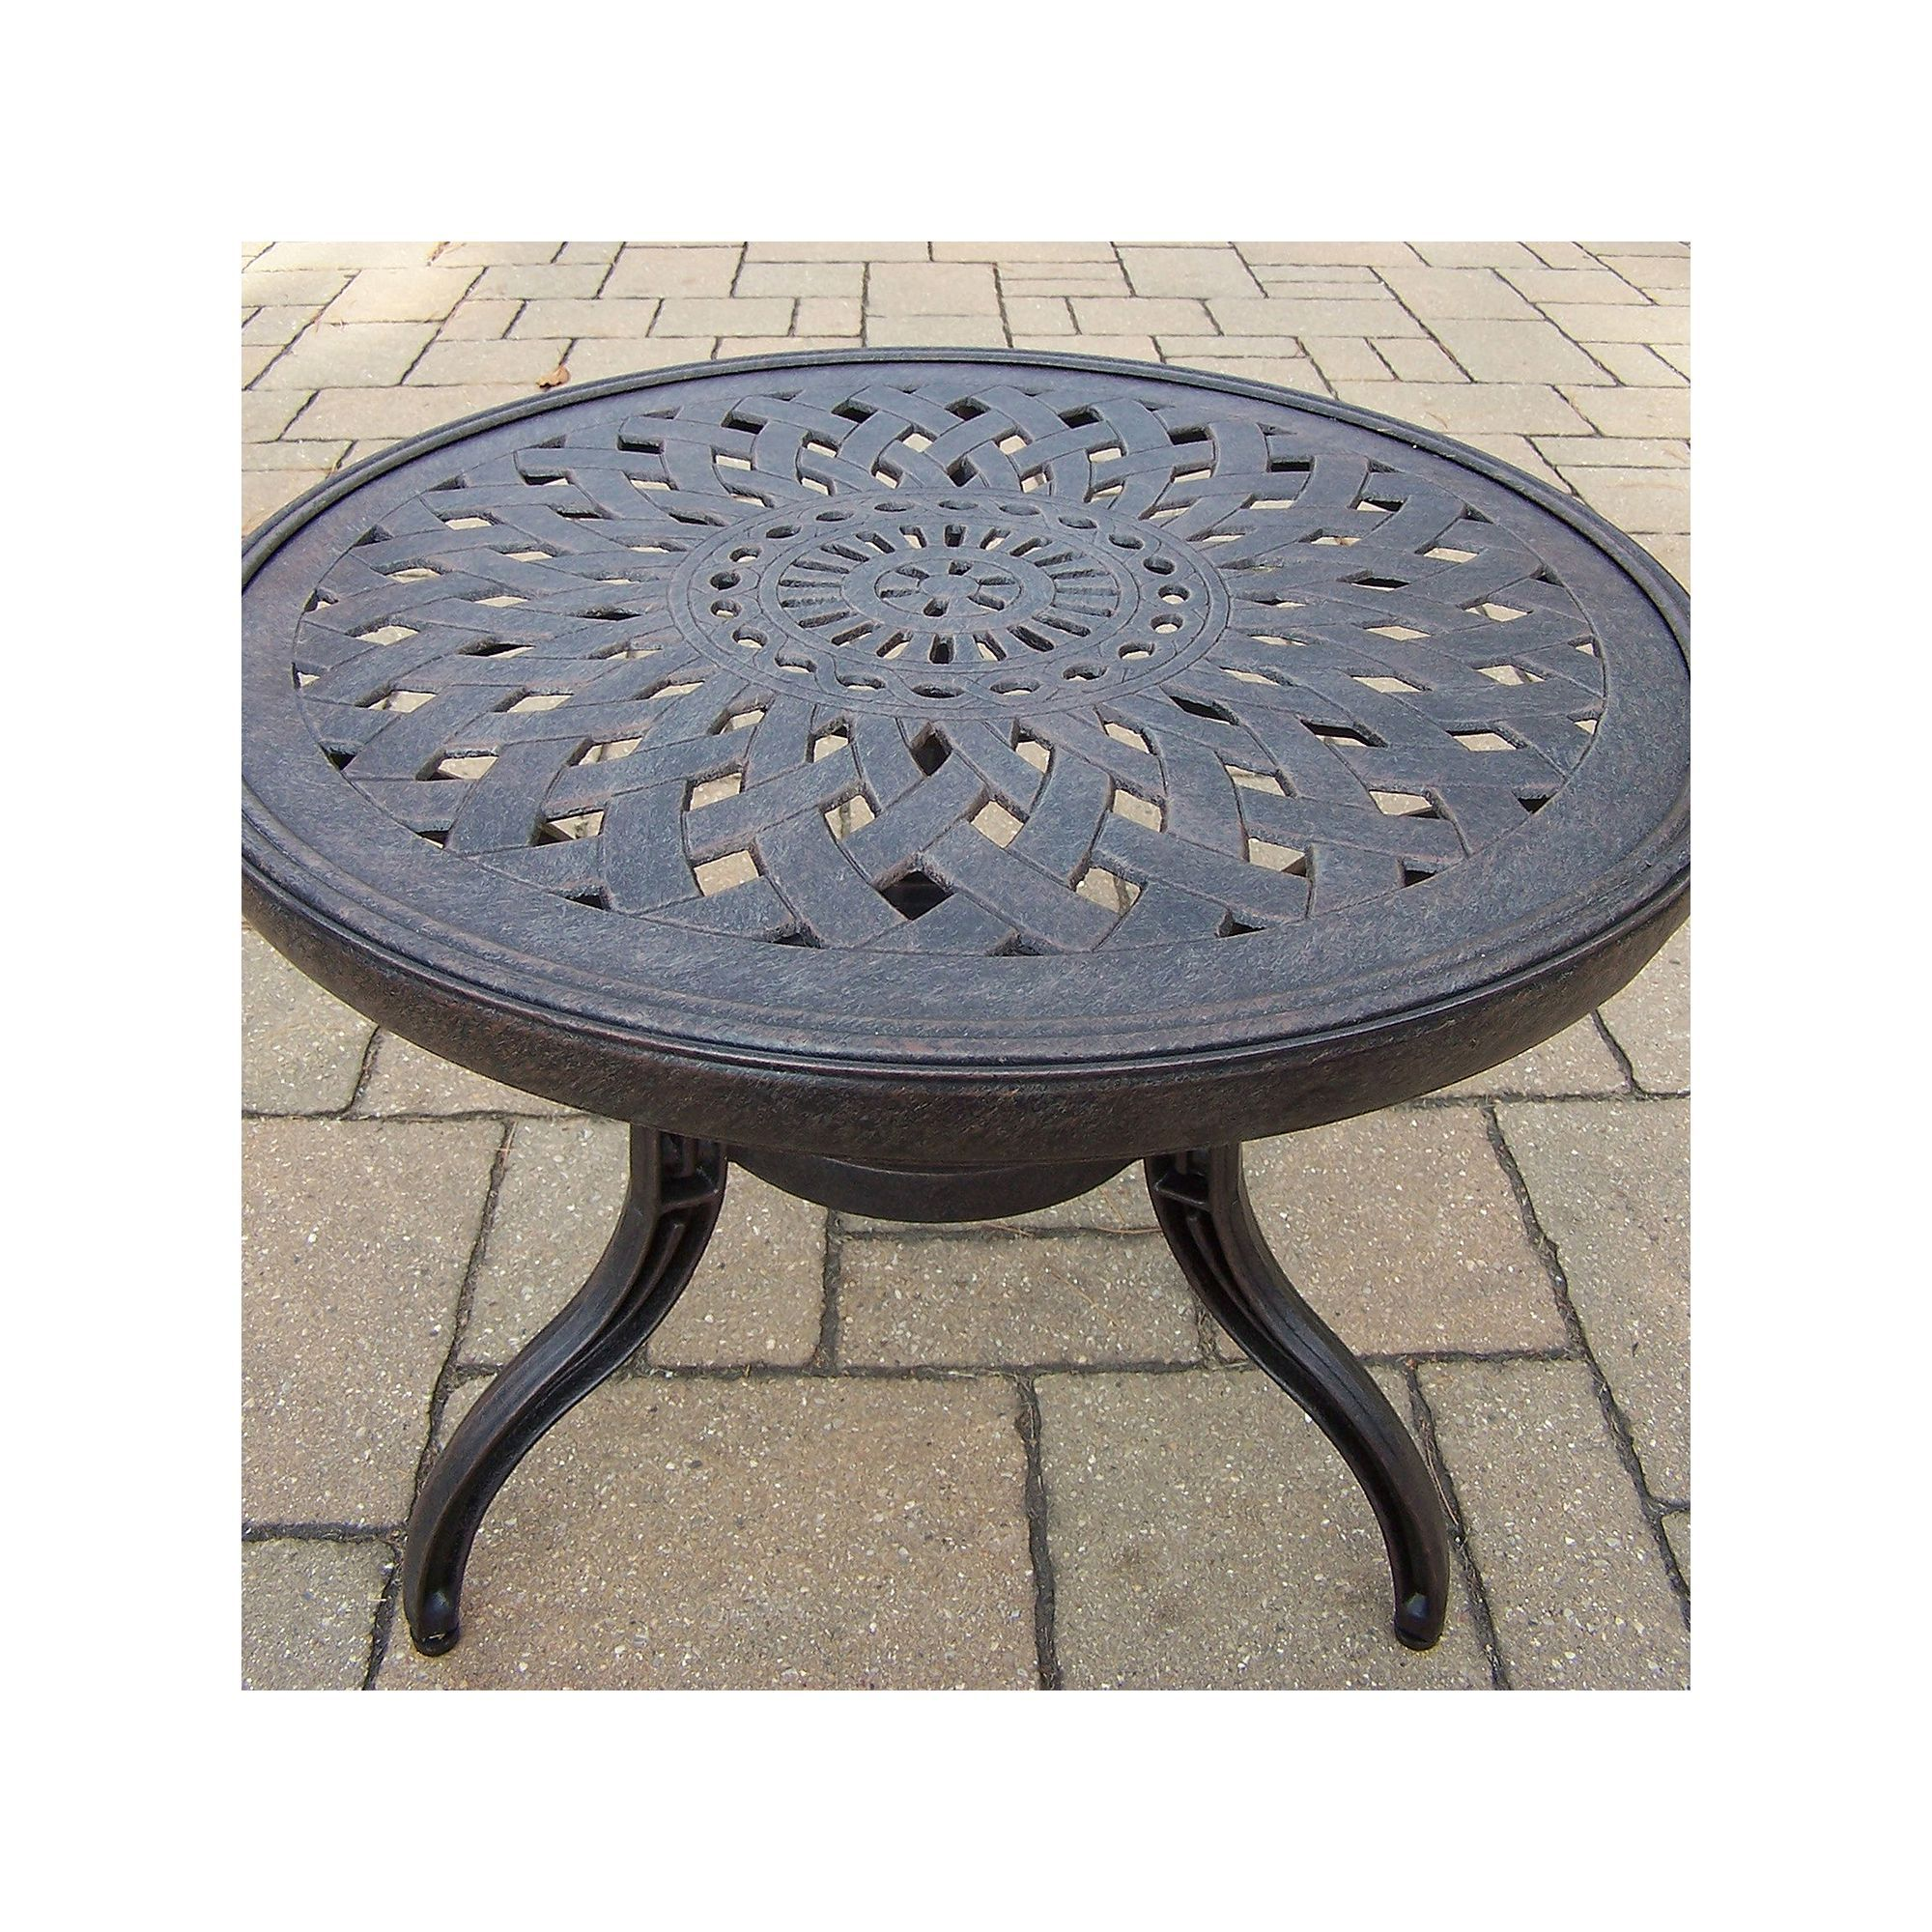 outdoor belmont round patio end table other clrs products mosaic accent kohls slipper chair union jack furniture vienna gray linens diy granite countertops iron garden target